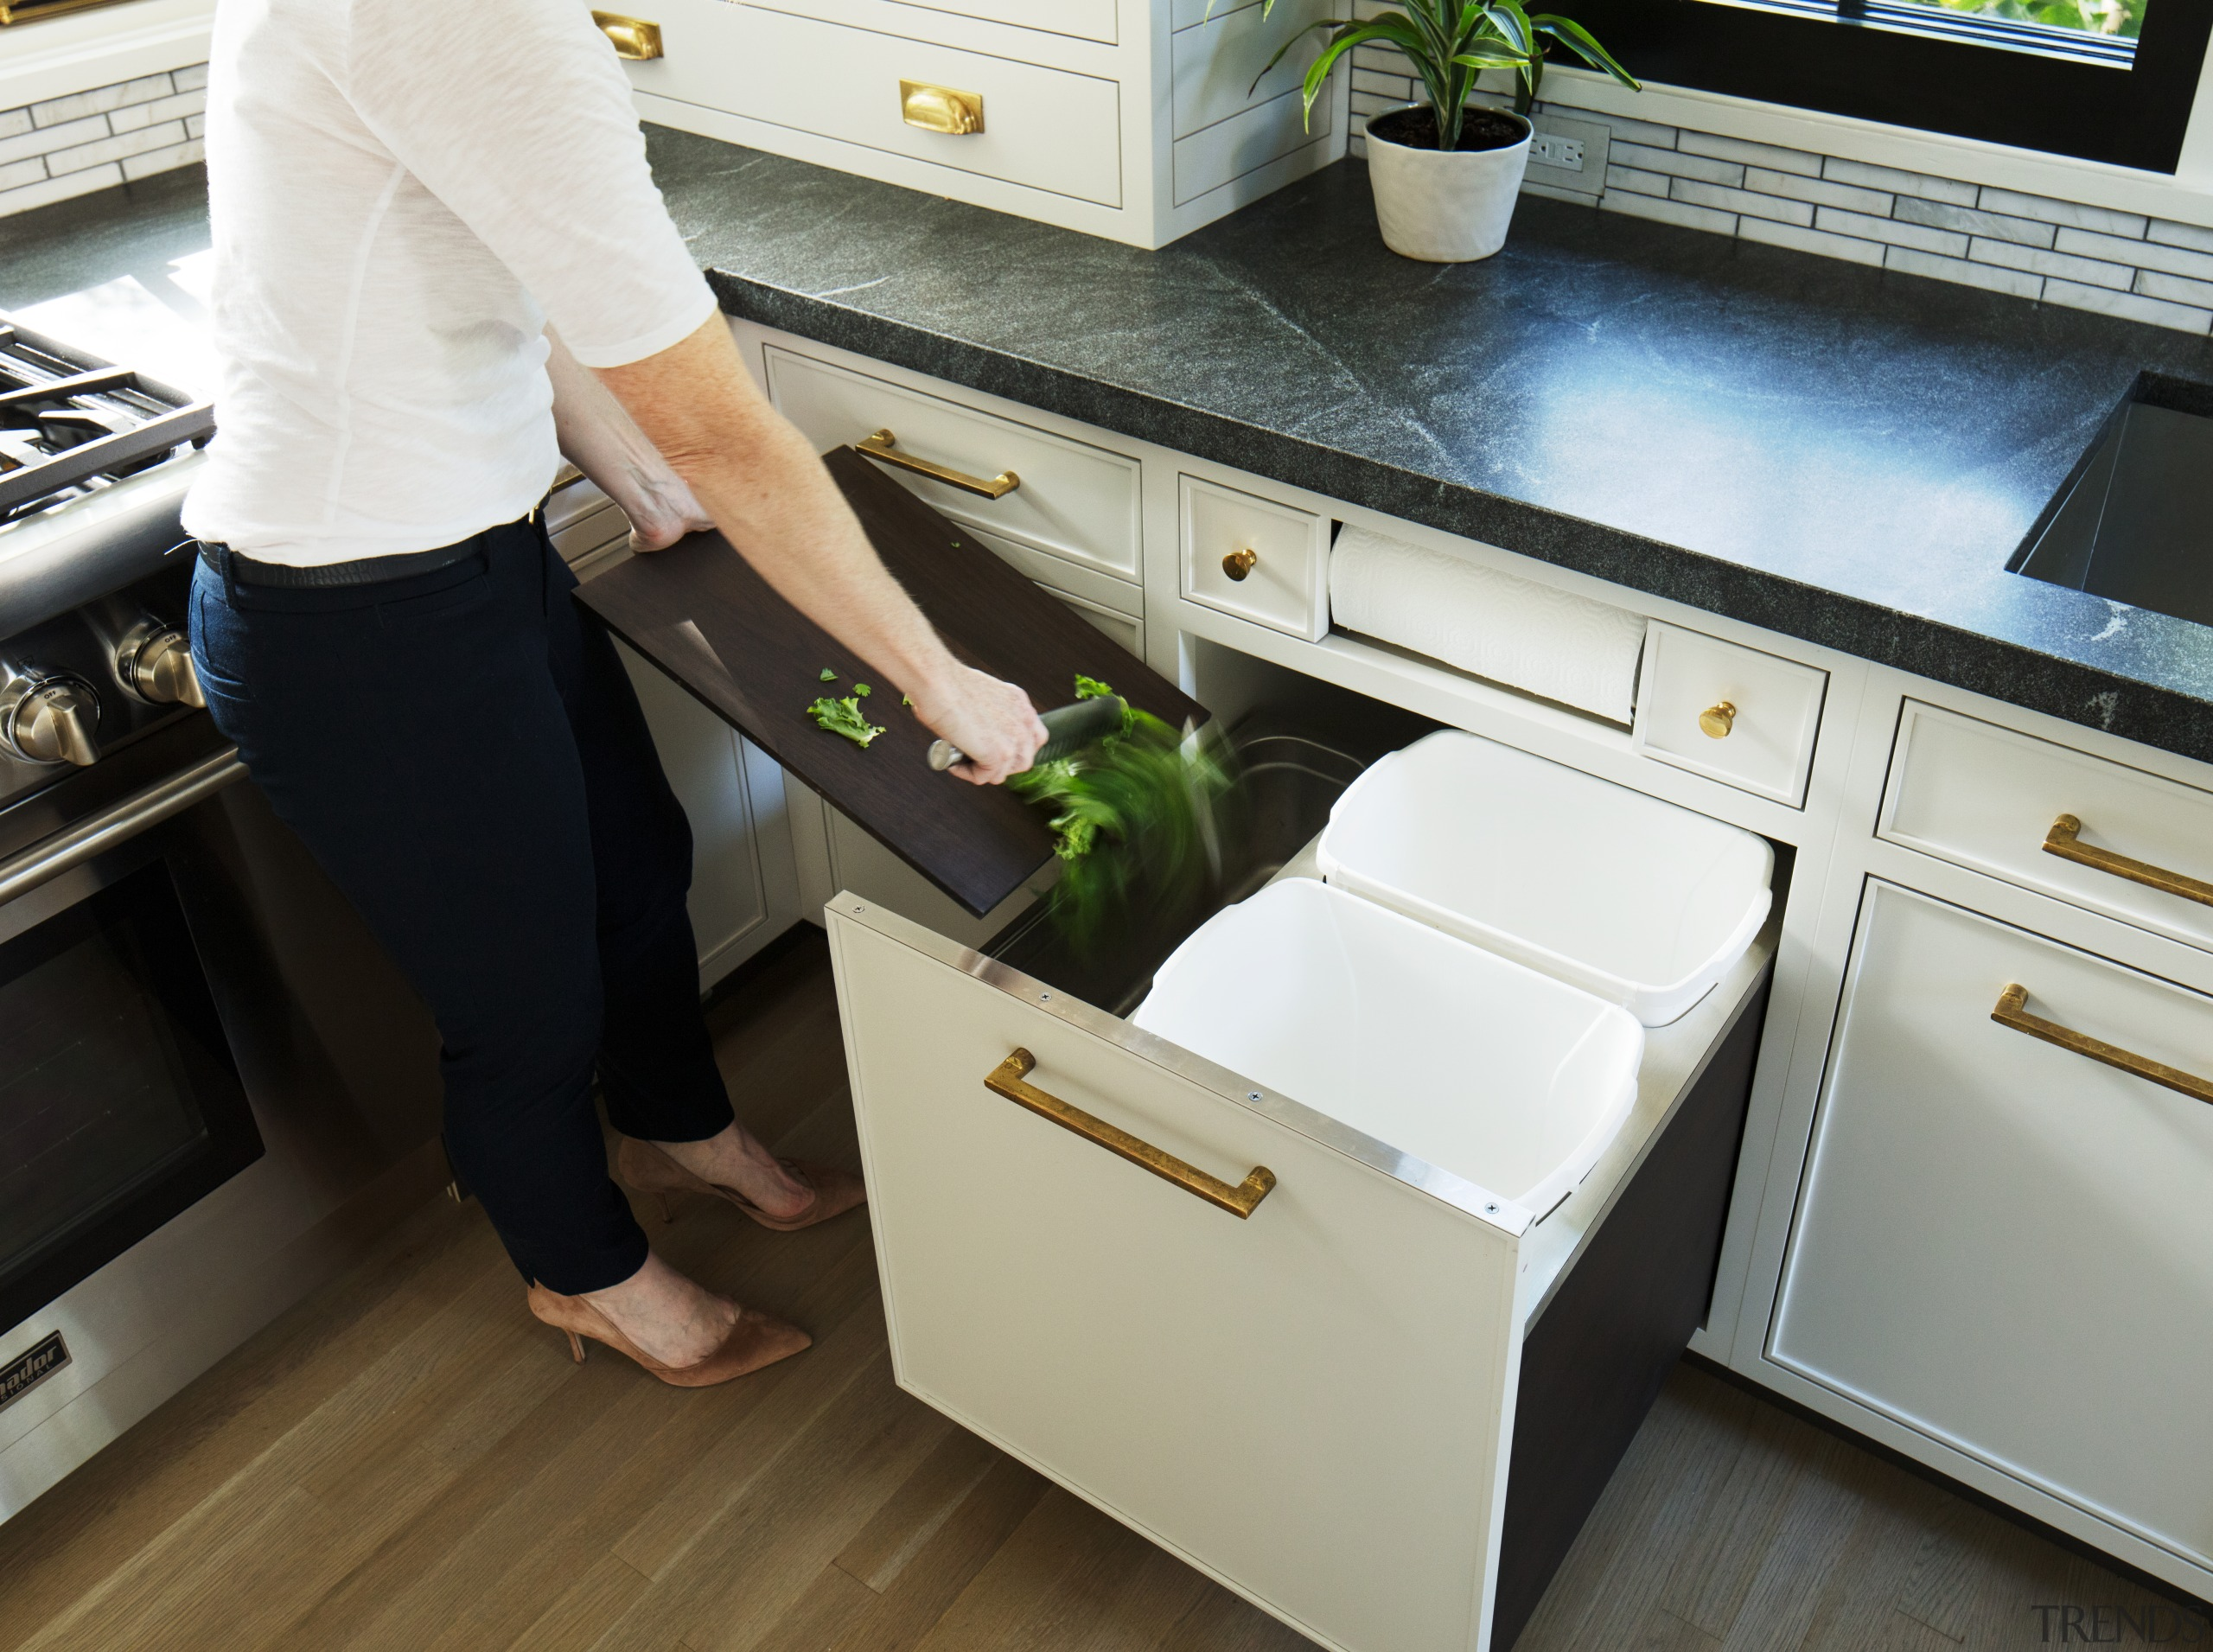 This kitchen by designer Sarah Robertson, of Studio cabinetry, drawers, countertop, Studio Dearborne